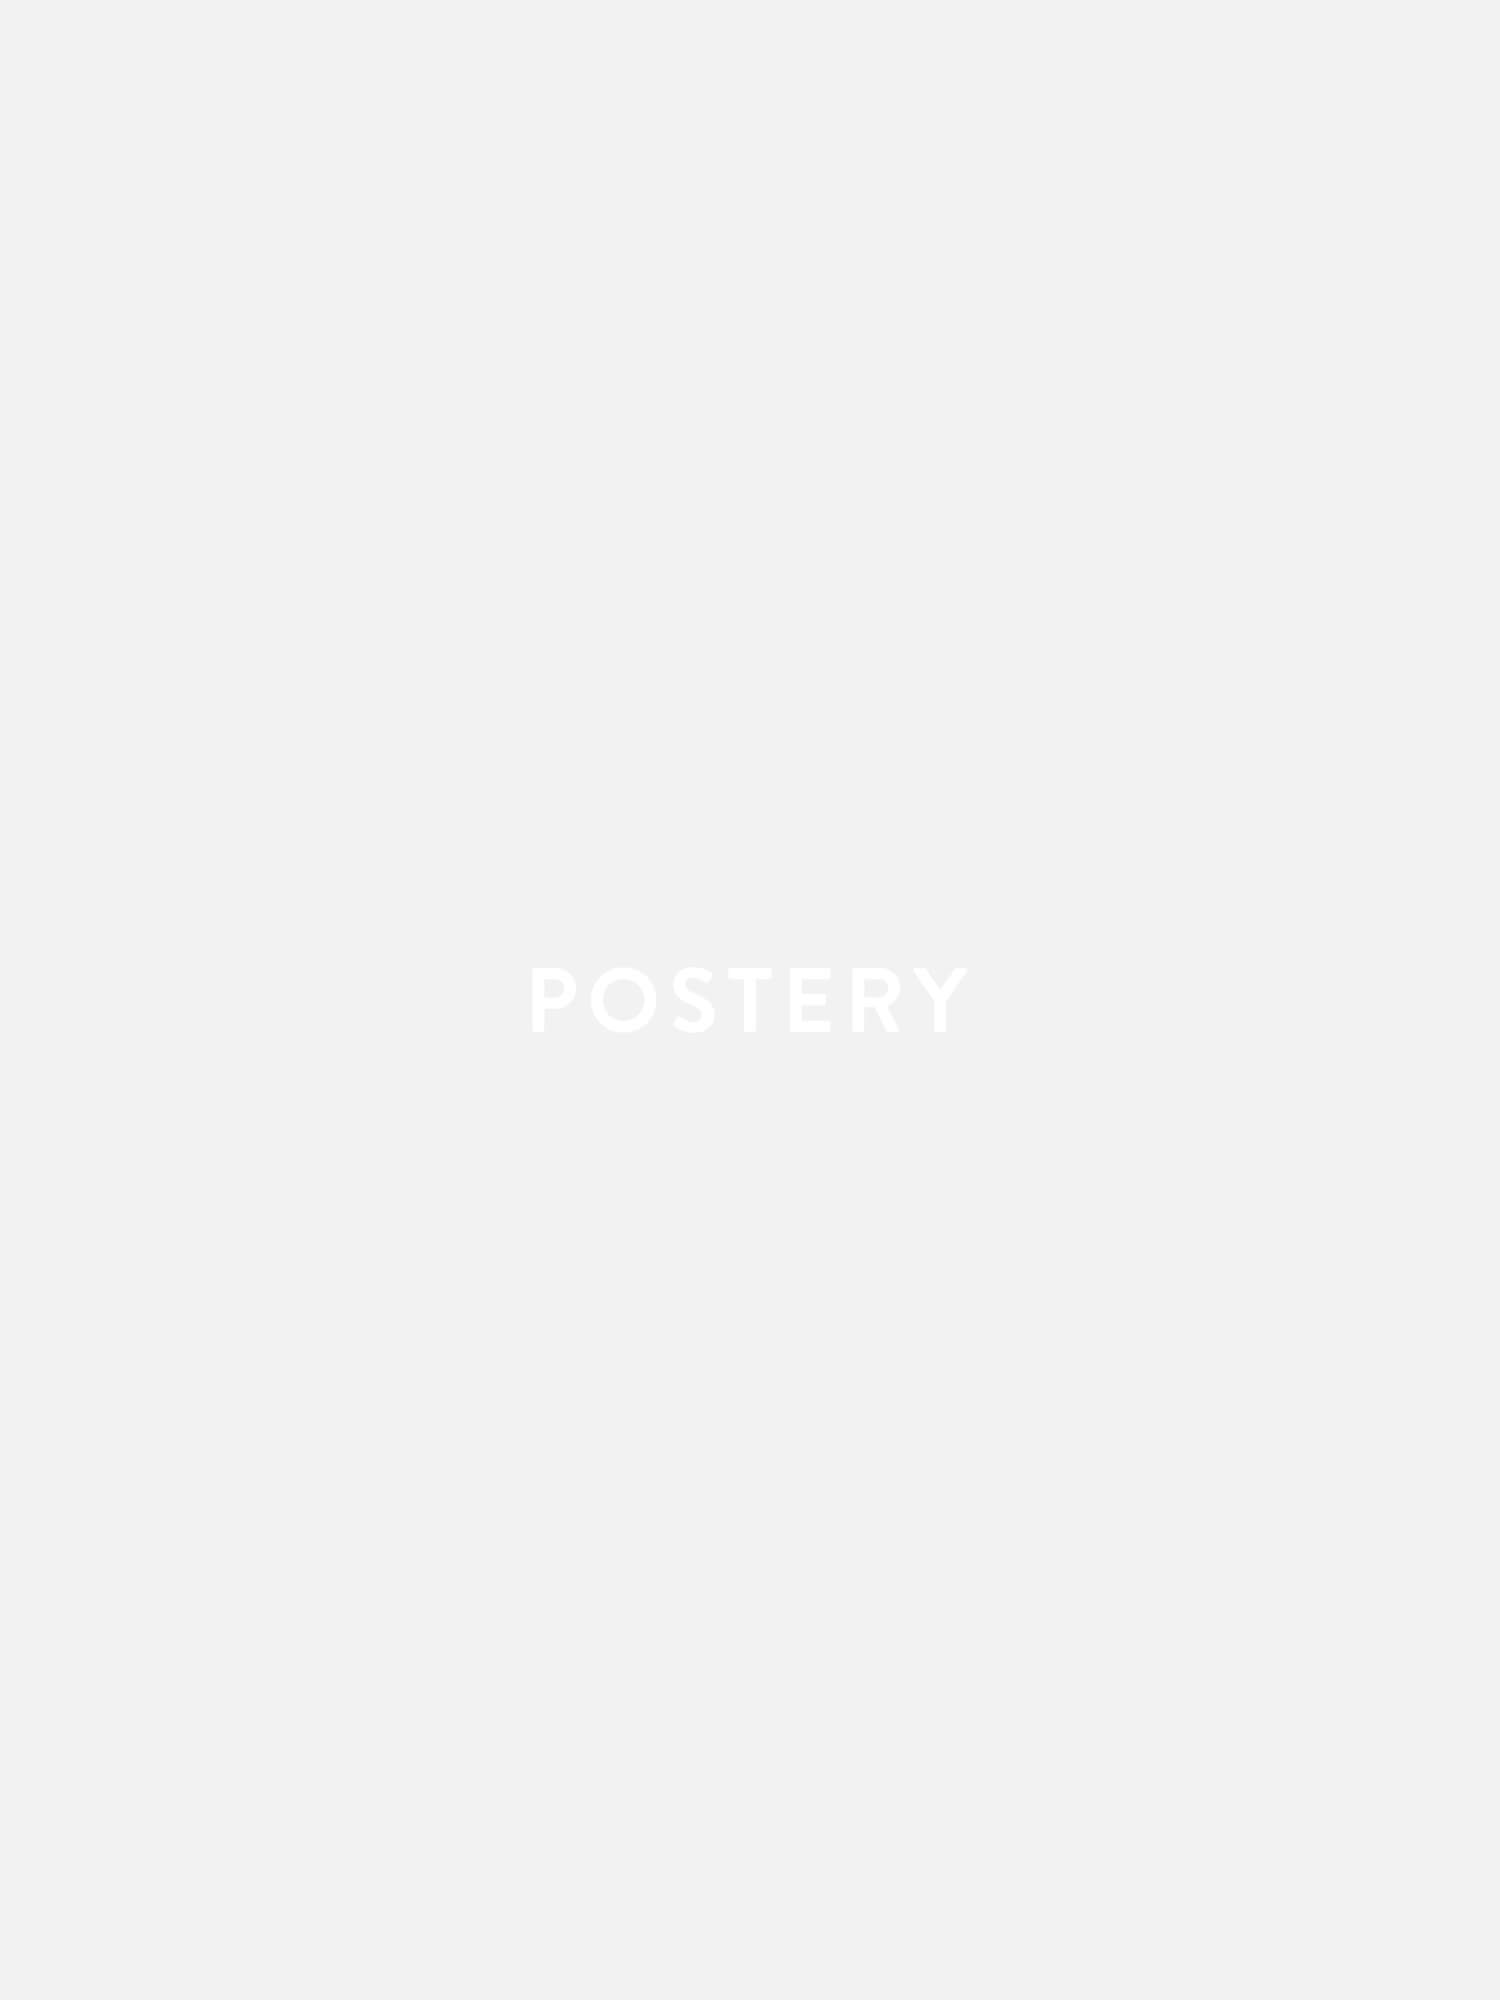 Blue Rose Close-Up Poster